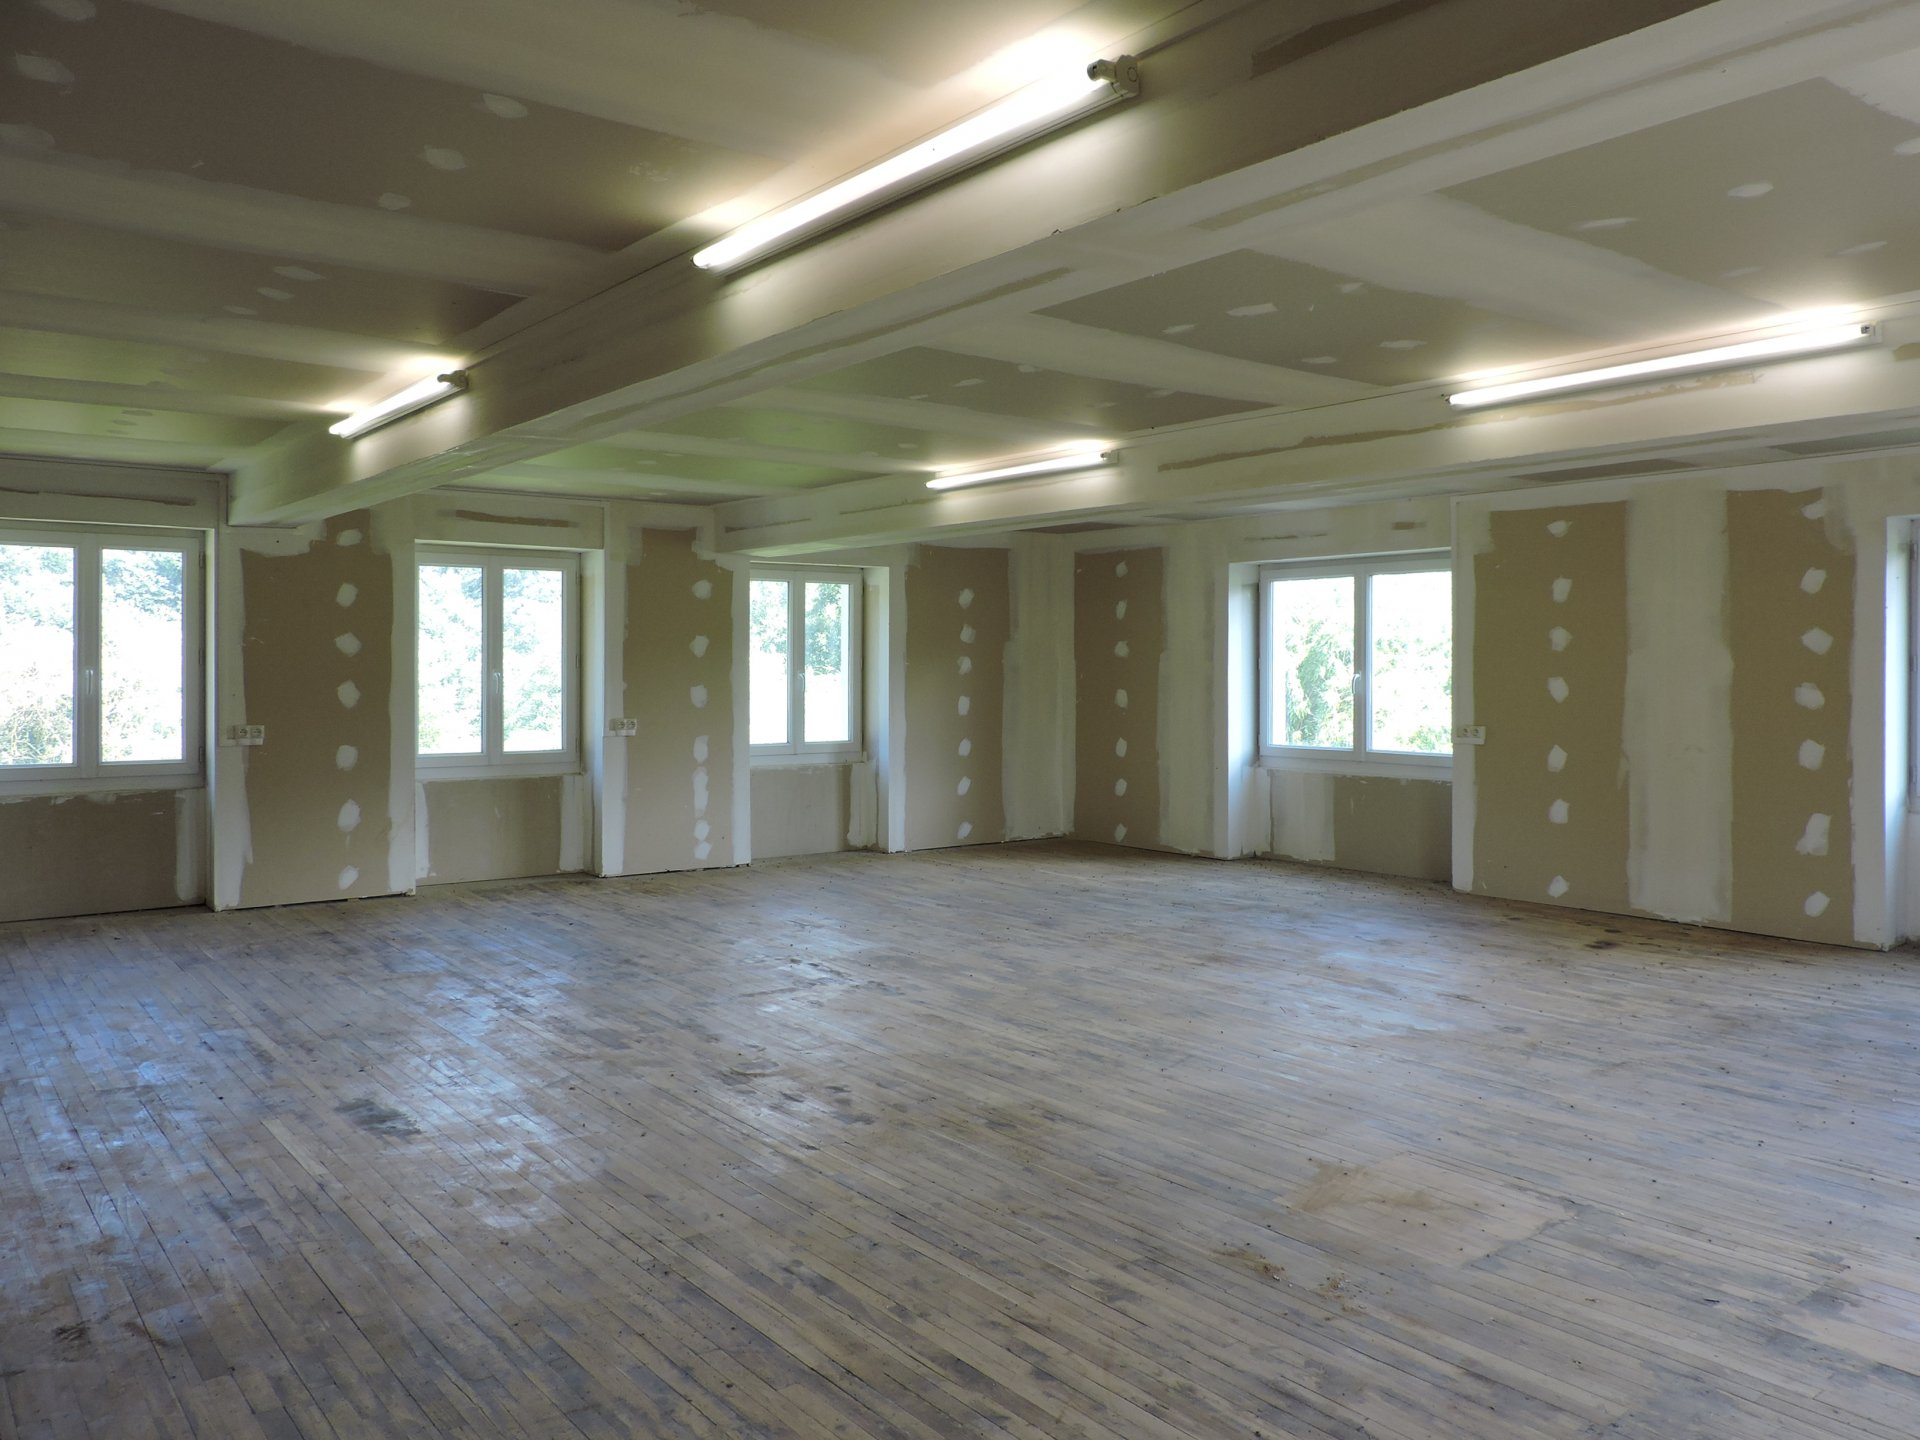 Reception room on the 2nd floor